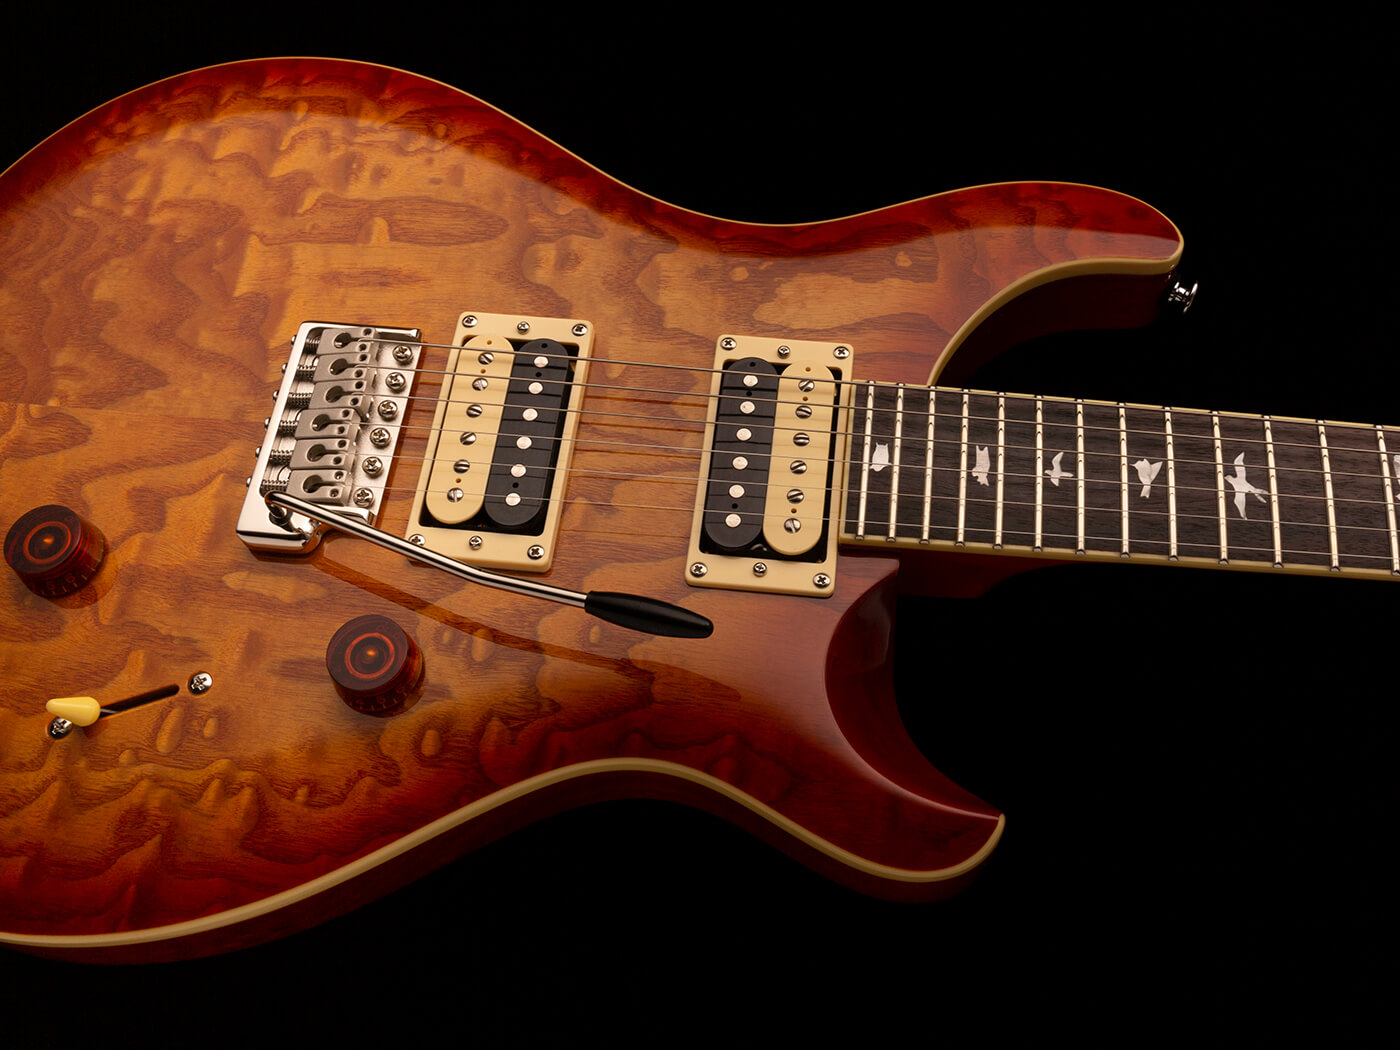 The PRS SE Custom 24 Burled Ash